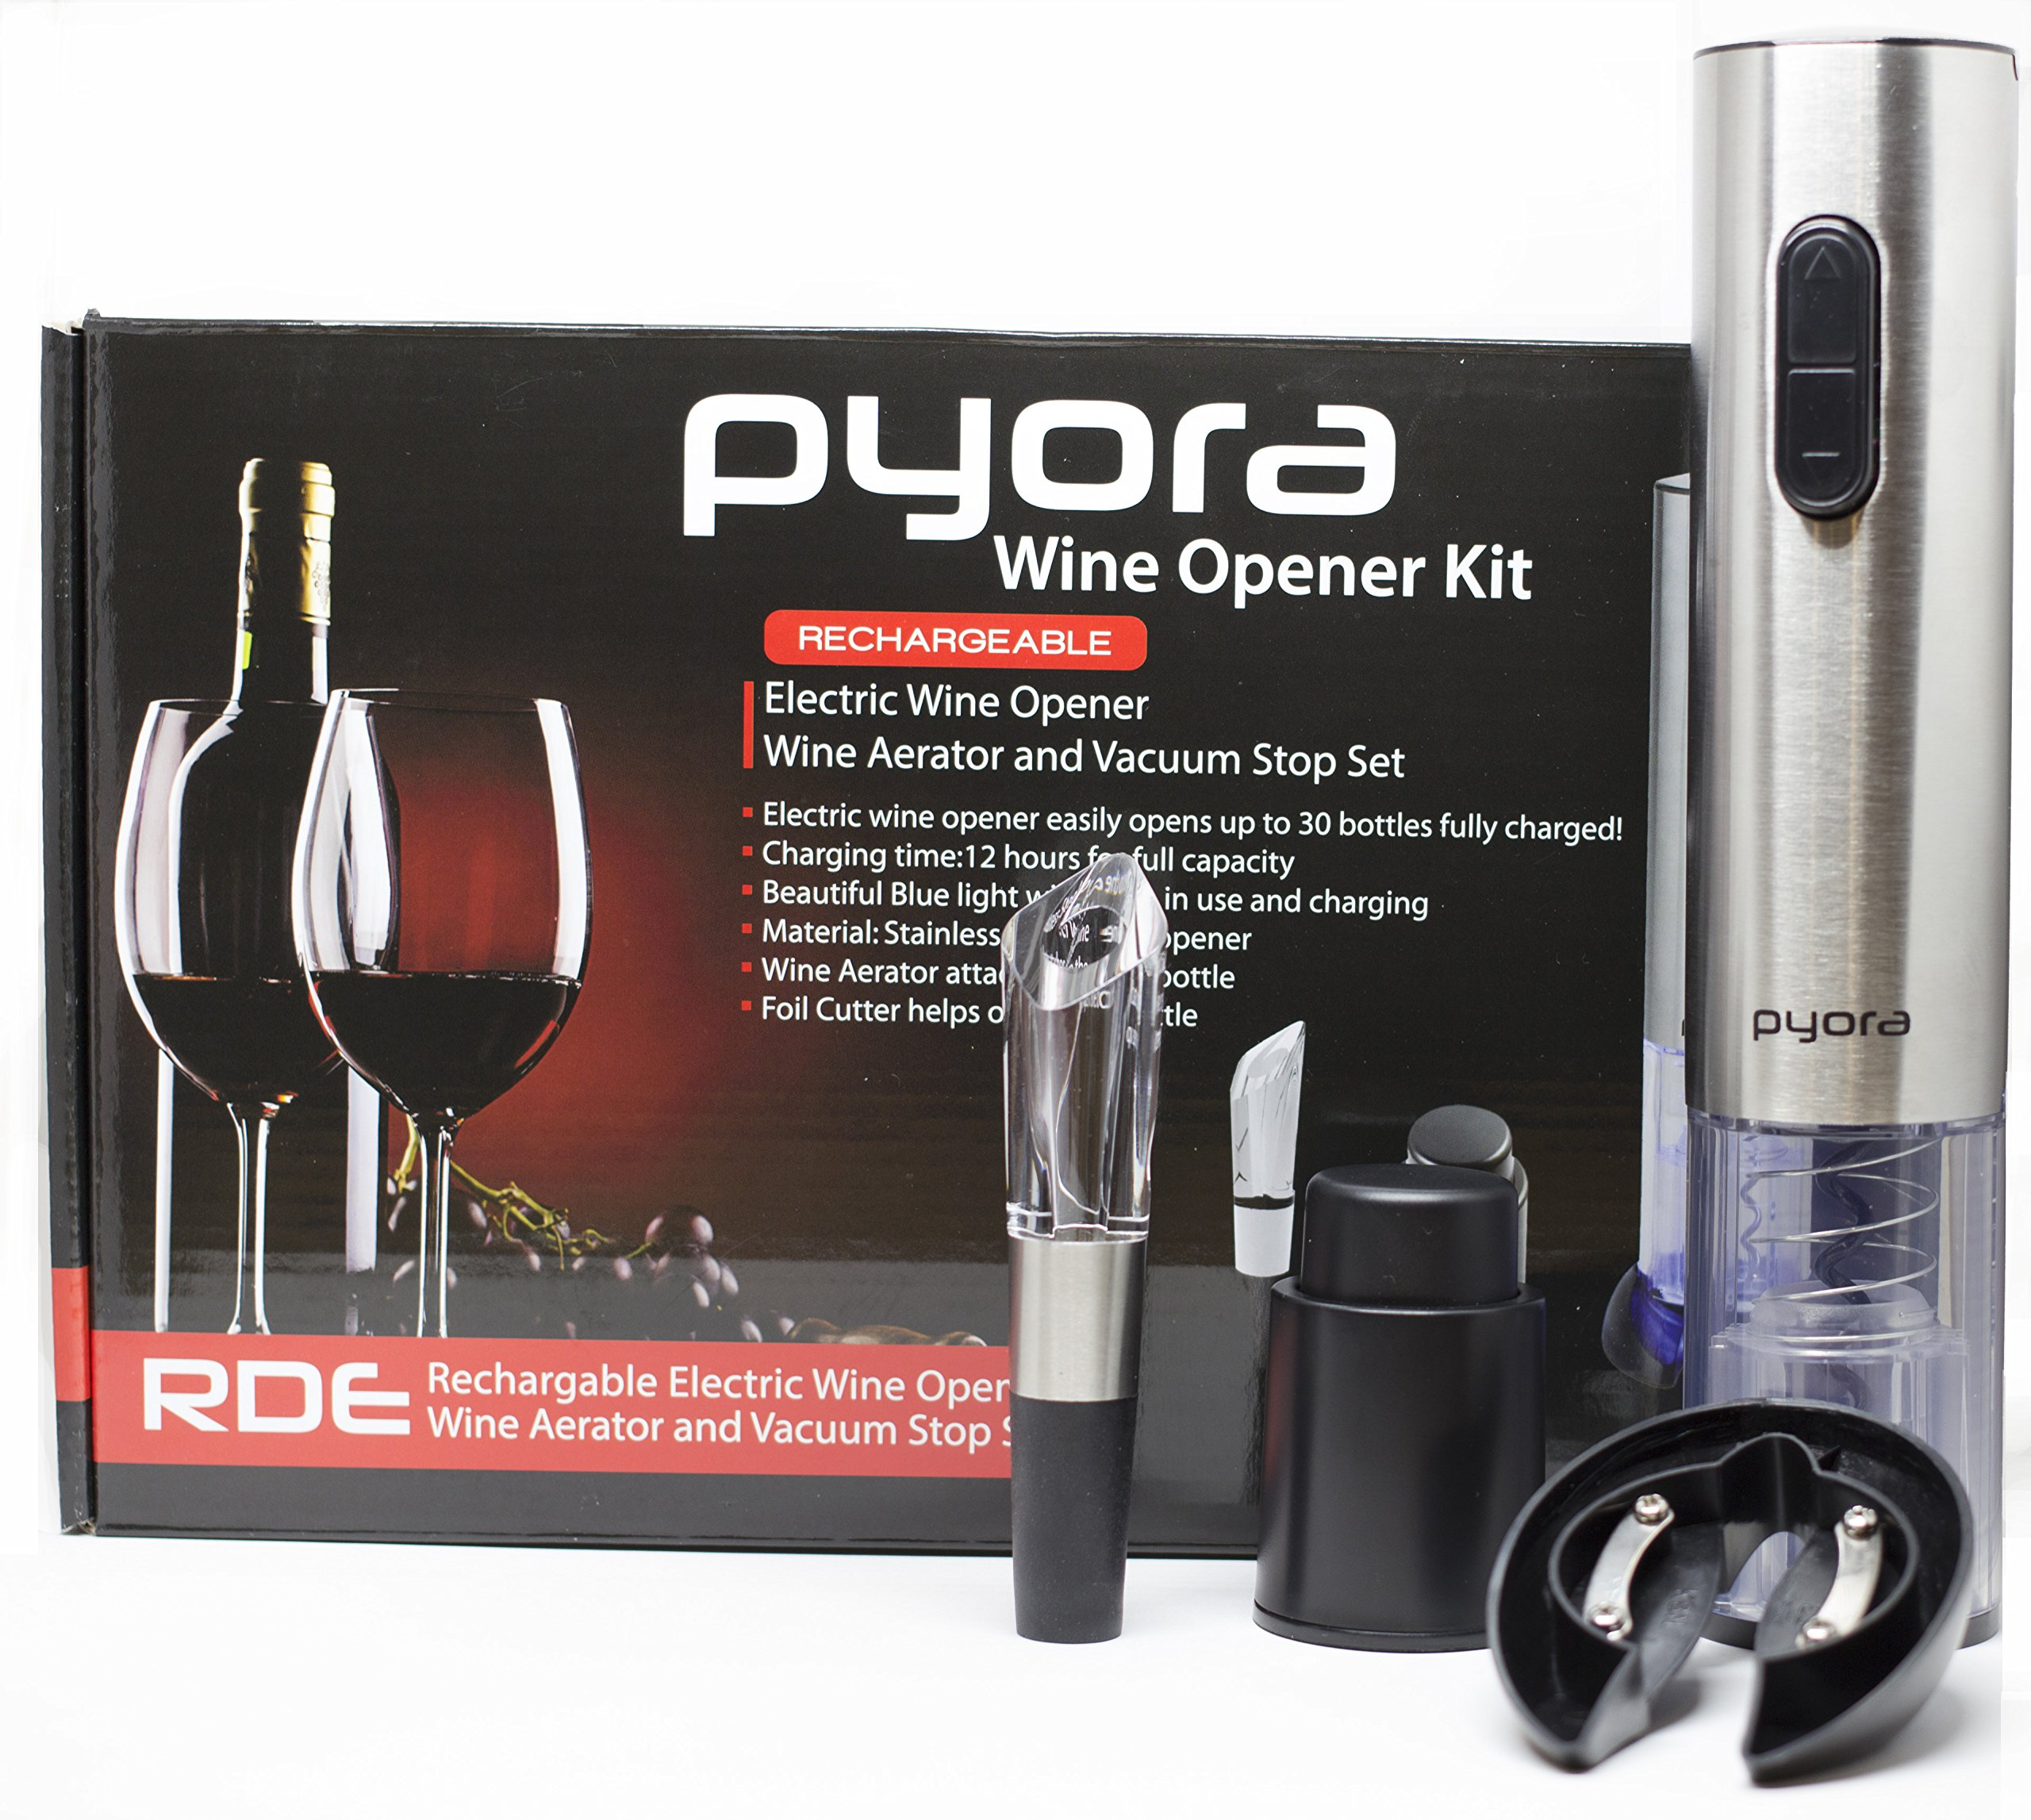 Electronic Wine Opener Gift Set, Rechargeable Stainless Steel Bottle Opener, Foil Cutter, Stopper, Aerator Pourer